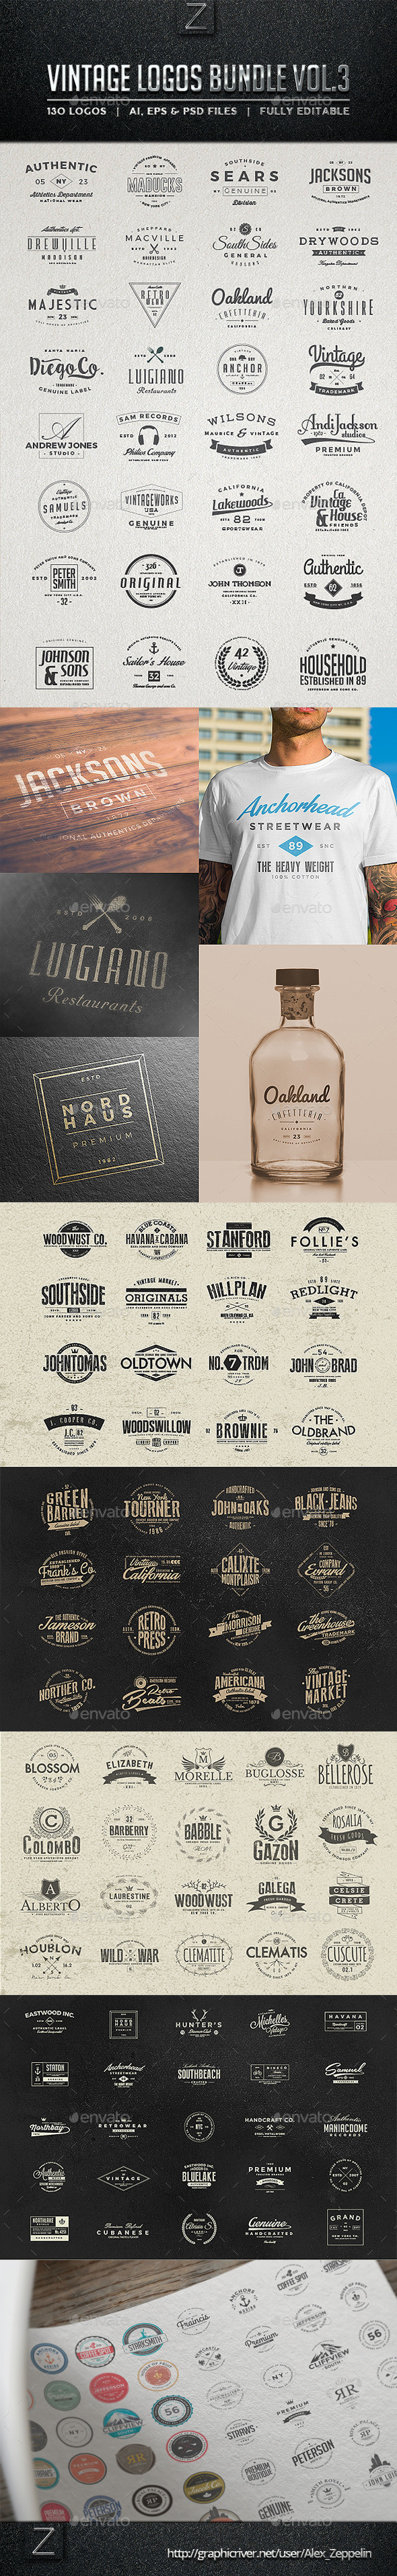 GraphicRiver 130 Vintage Logos Bundle Vol.3 11198215